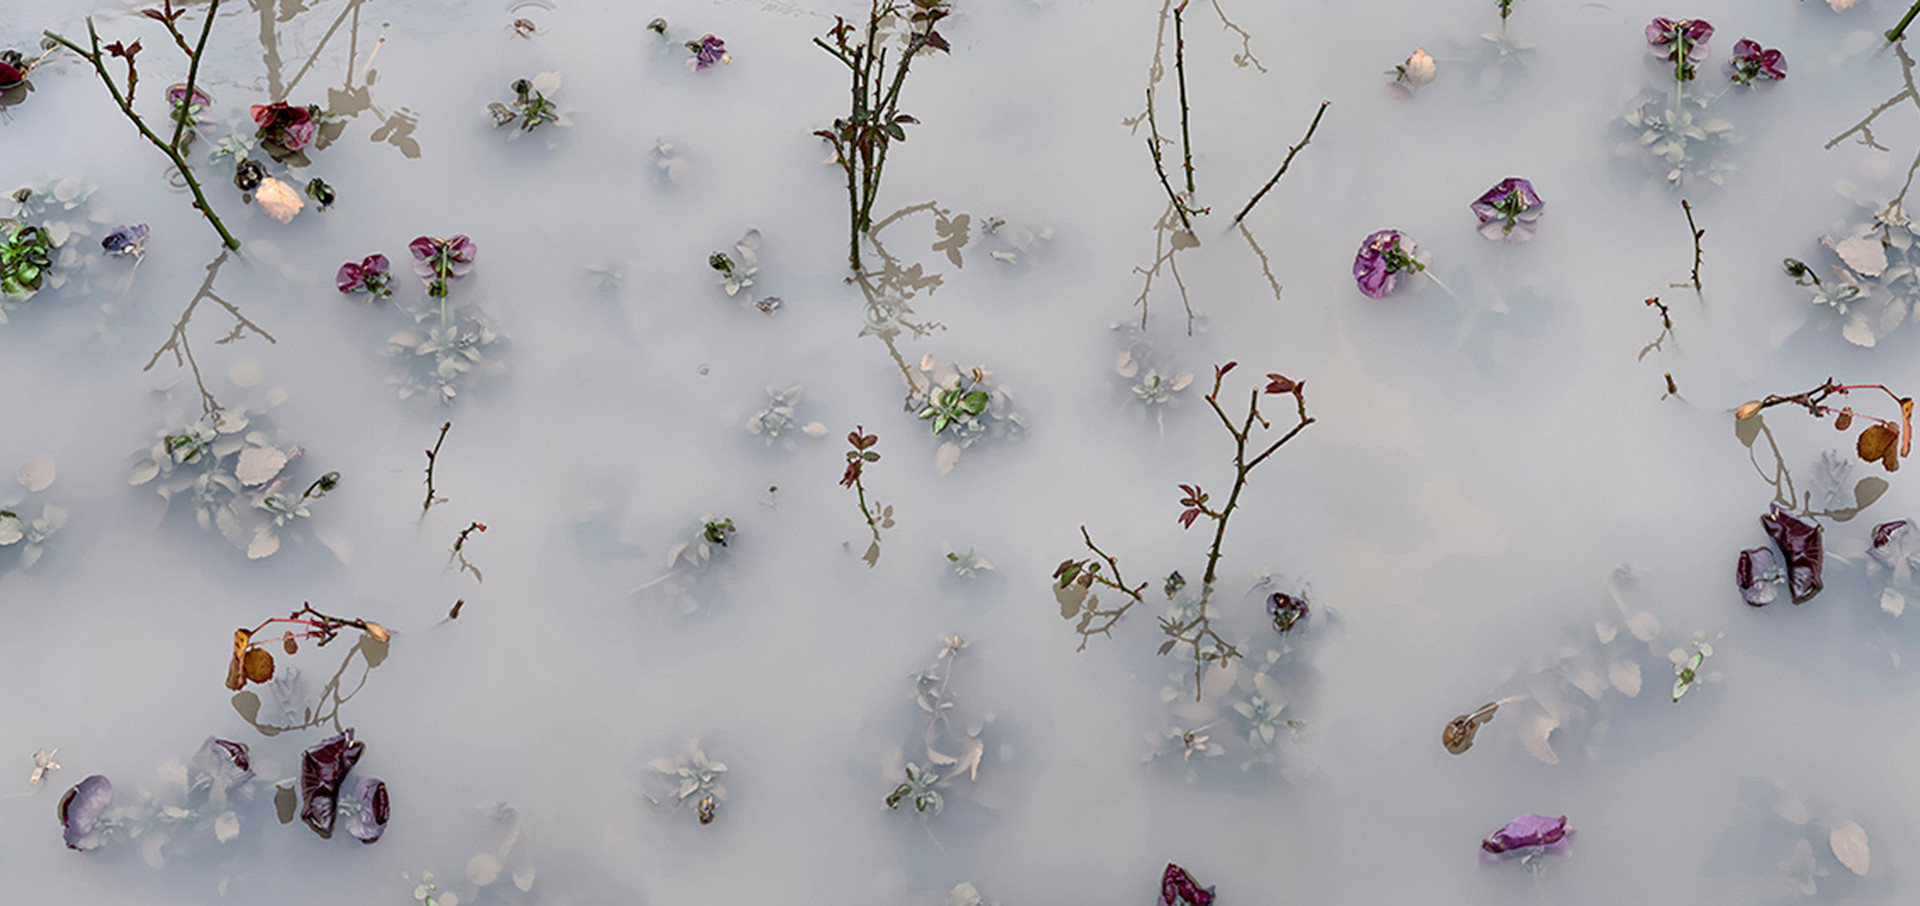 Mist and Water I